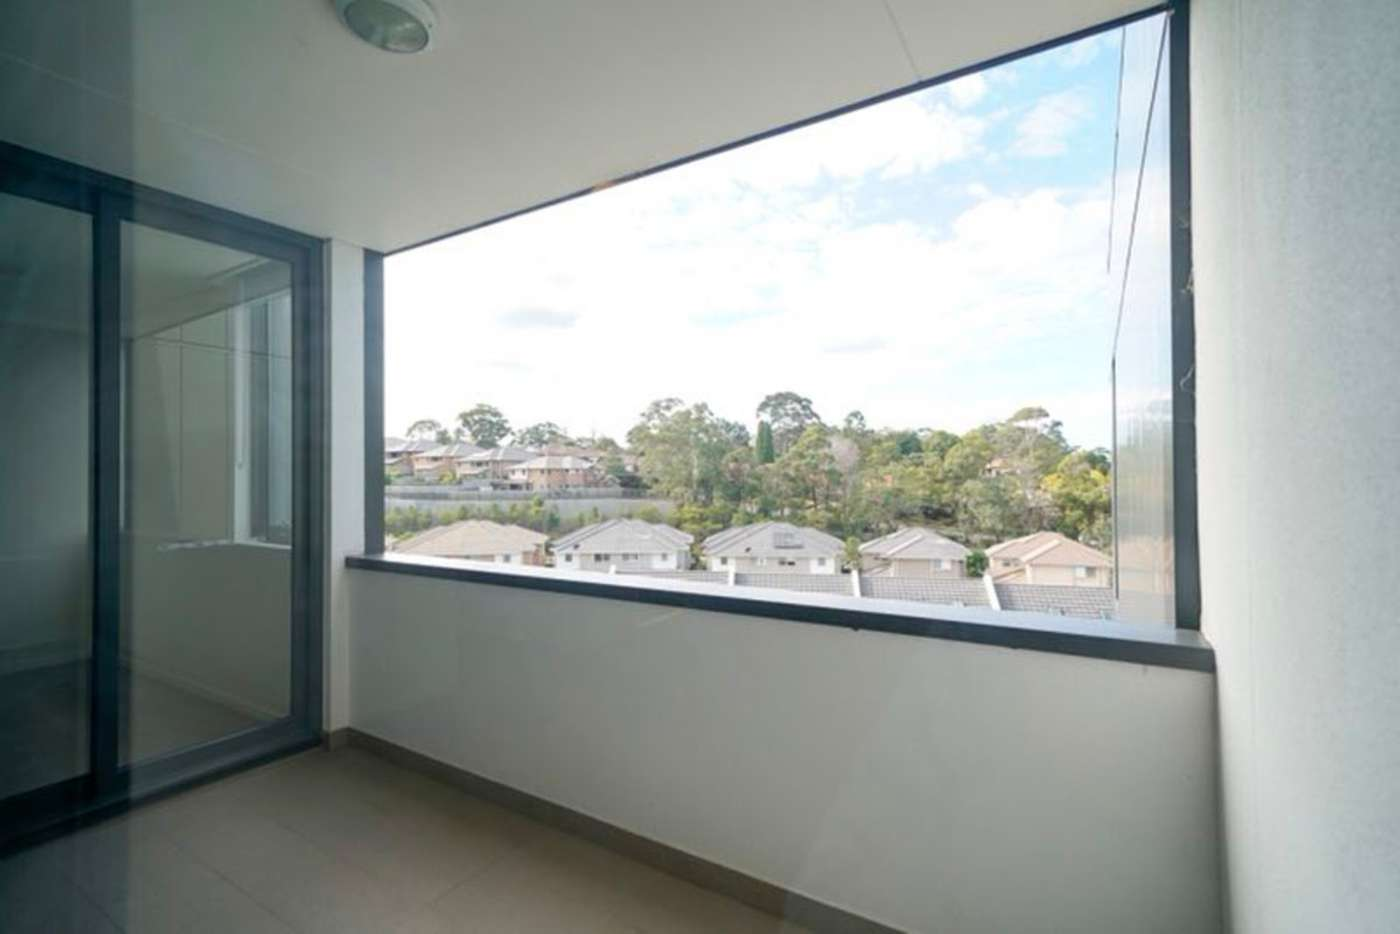 Seventh view of Homely apartment listing, 601/8 Avondale Way, Eastwood NSW 2122